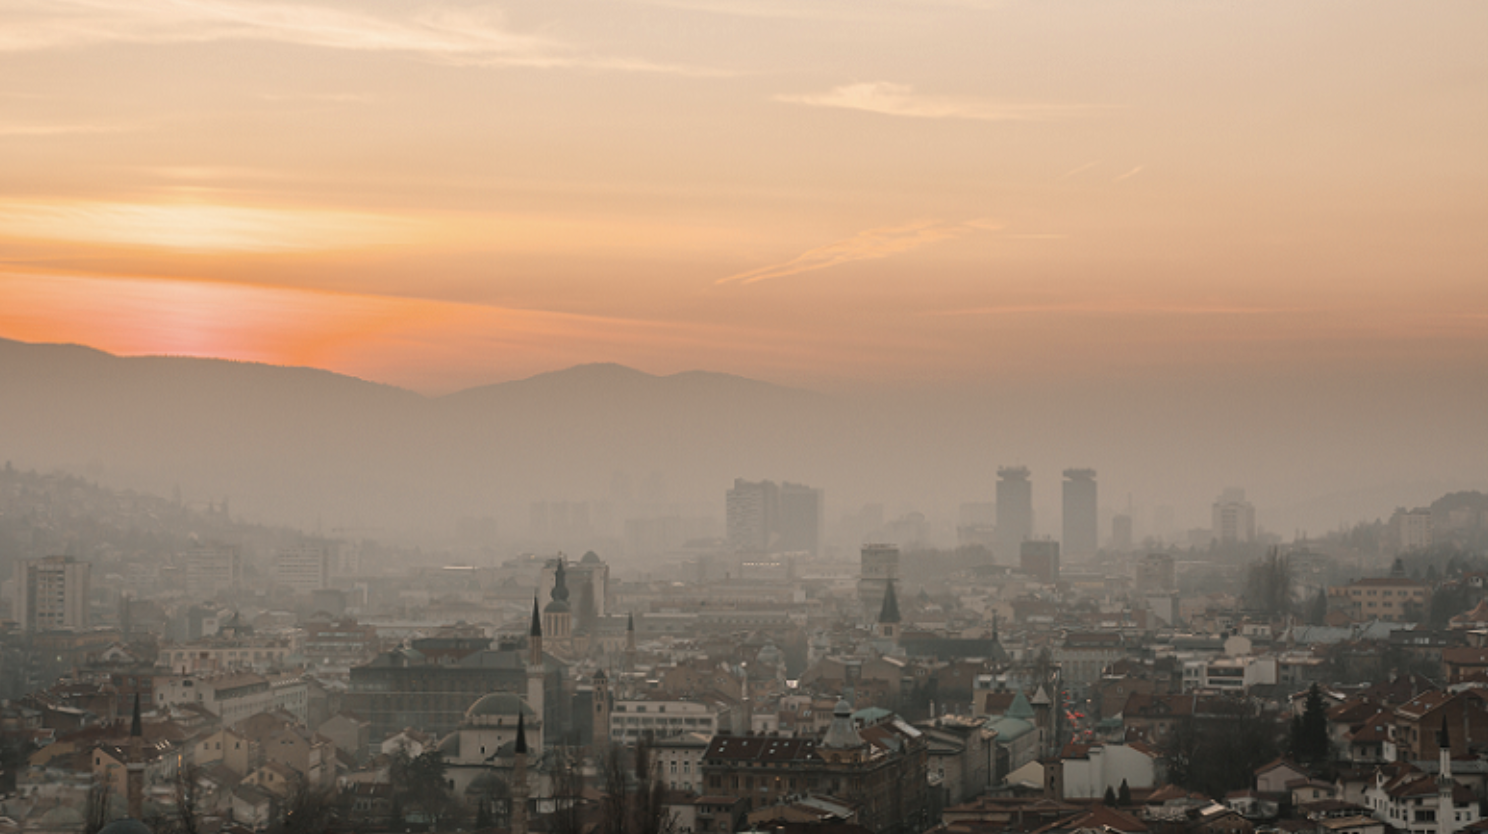 World Bank: Going Green means cleaner air, healthier living in the Western Balkans